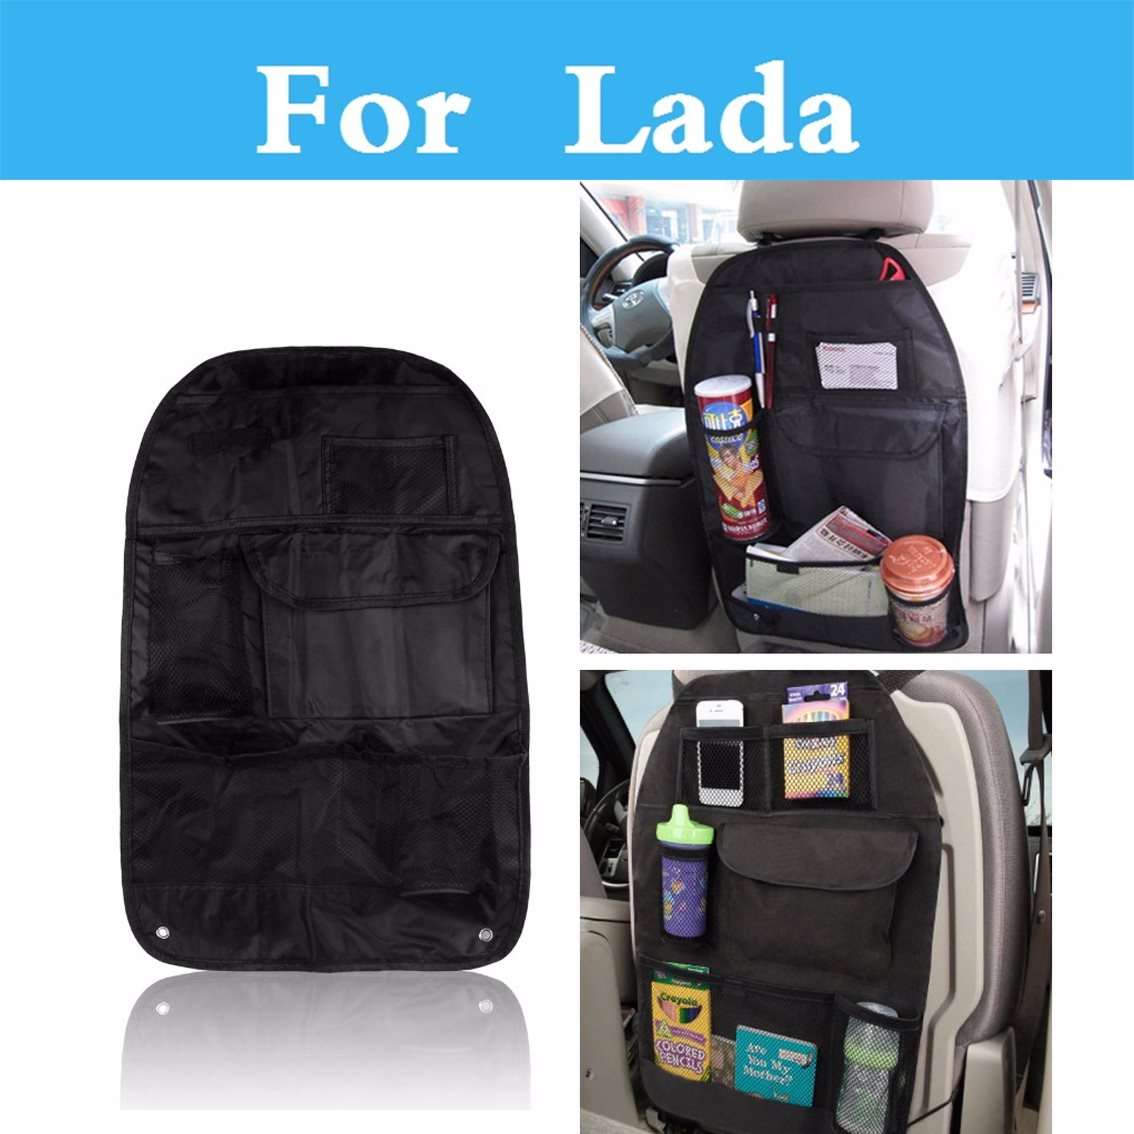 Car Seat Storage Hanging Bag Multifunction Vehicle Storage Box For <font><b>Lada</b></font> 1111 Oka 2105 2106 2107 <font><b>2109</b></font> 2110 2112 2113 2114 2115 image